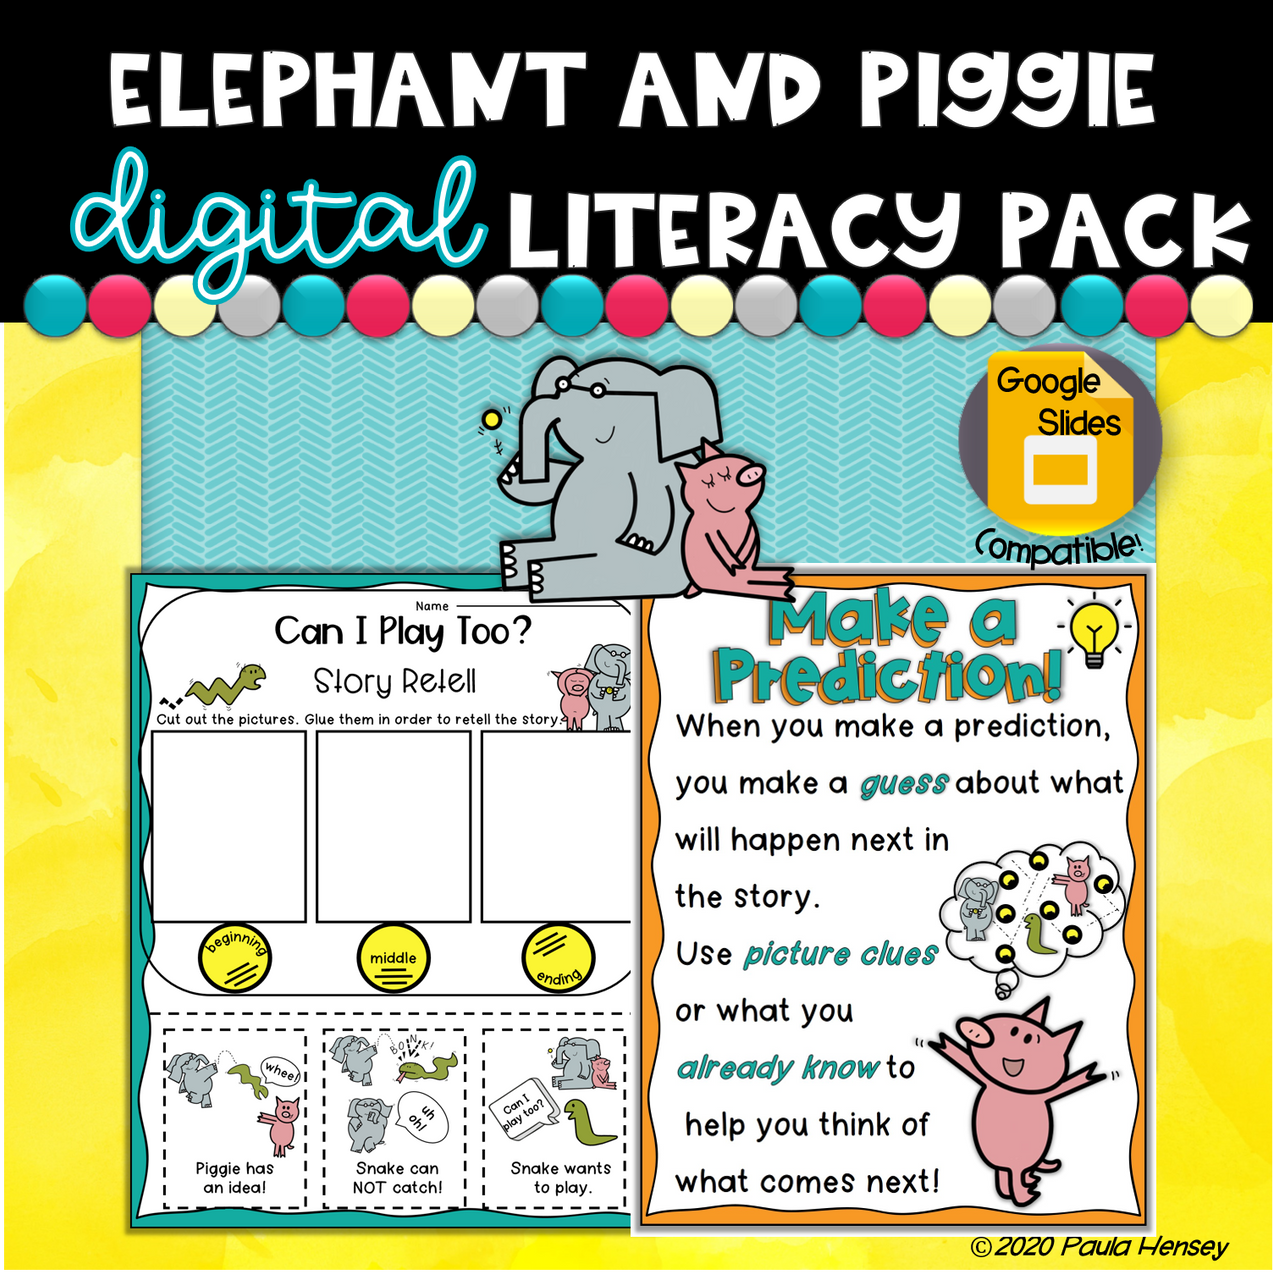 Elephant and Piggie K-2 Literacy Pack Distance Learning Work At Home Packet